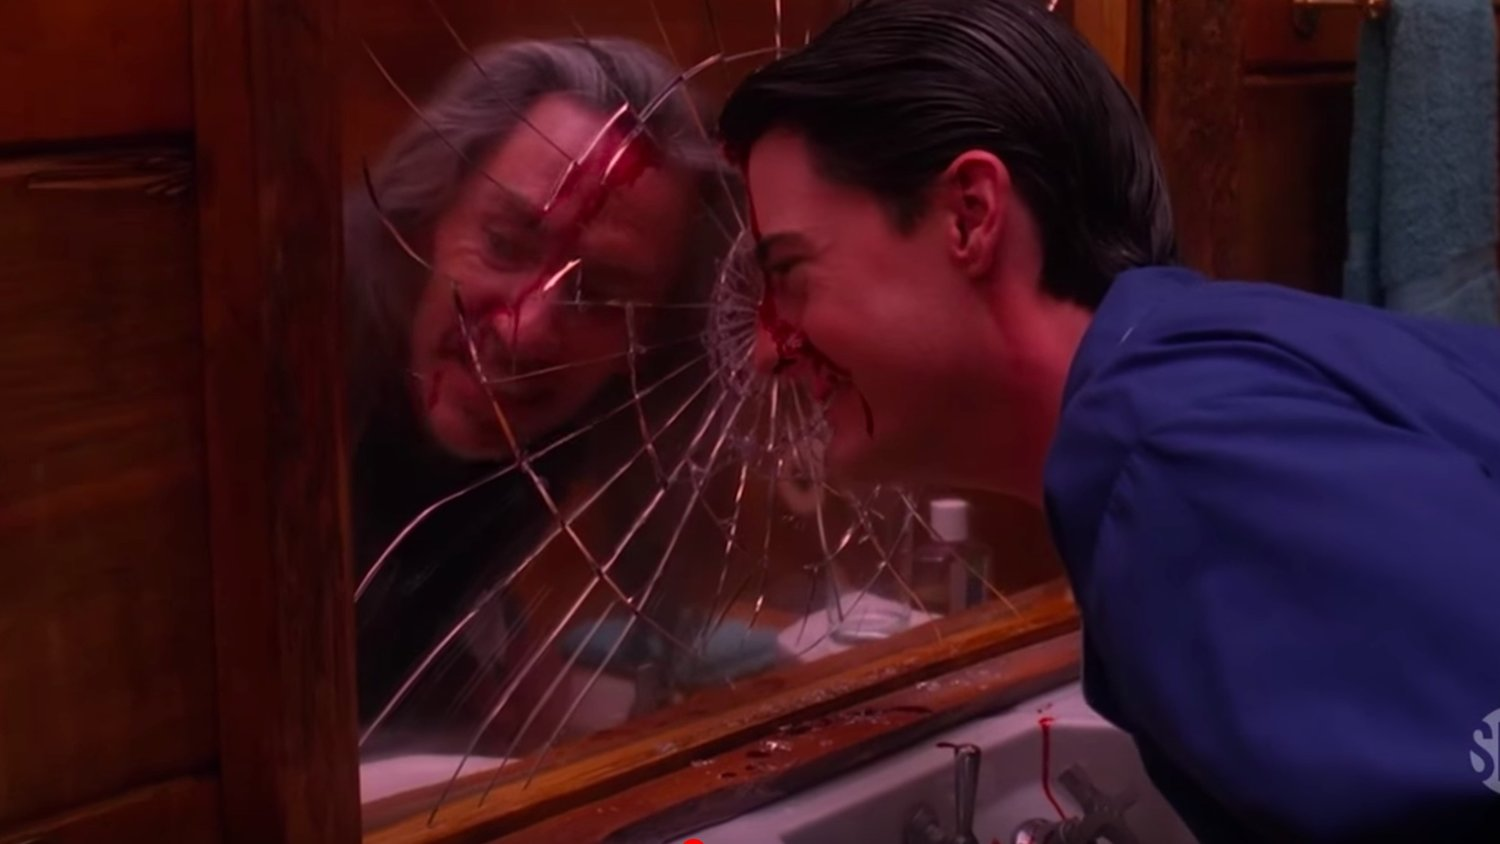 Two New Trailers and Posters for David Lynch's TWIN PEAKS Revival Raise Questions